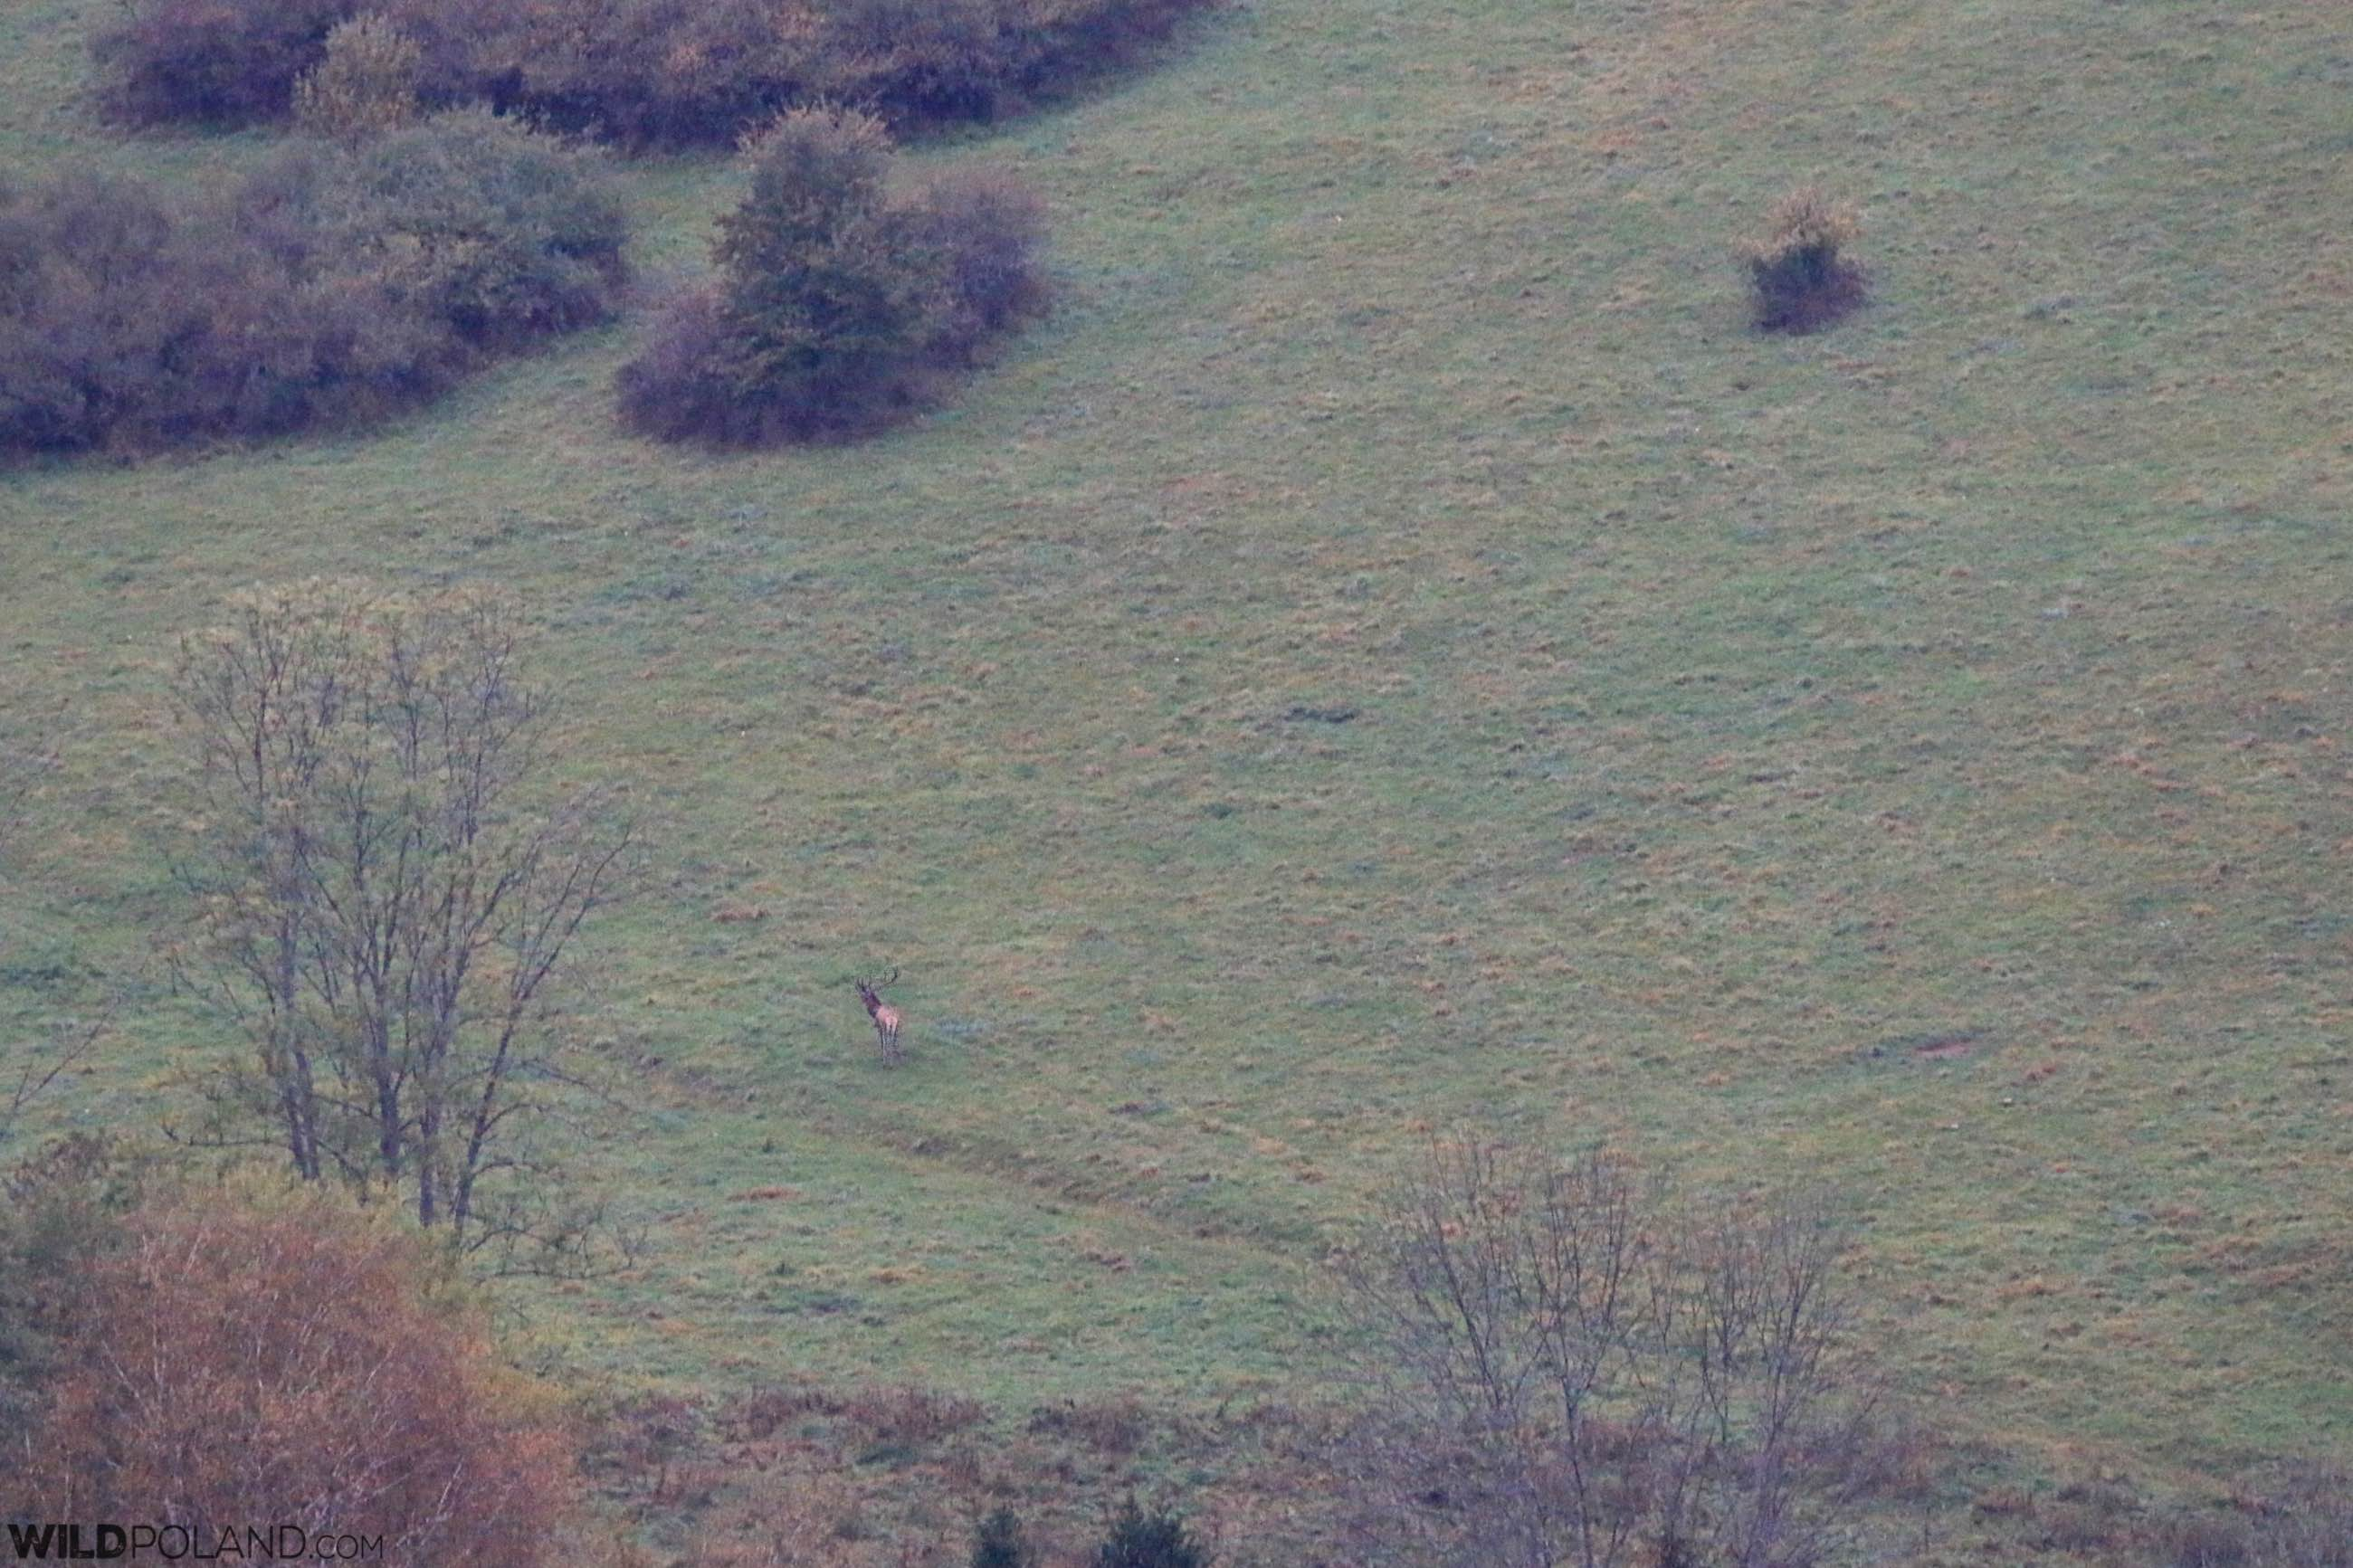 Red Deer stag in the Eastern Carpathians, Bieszczady Mts